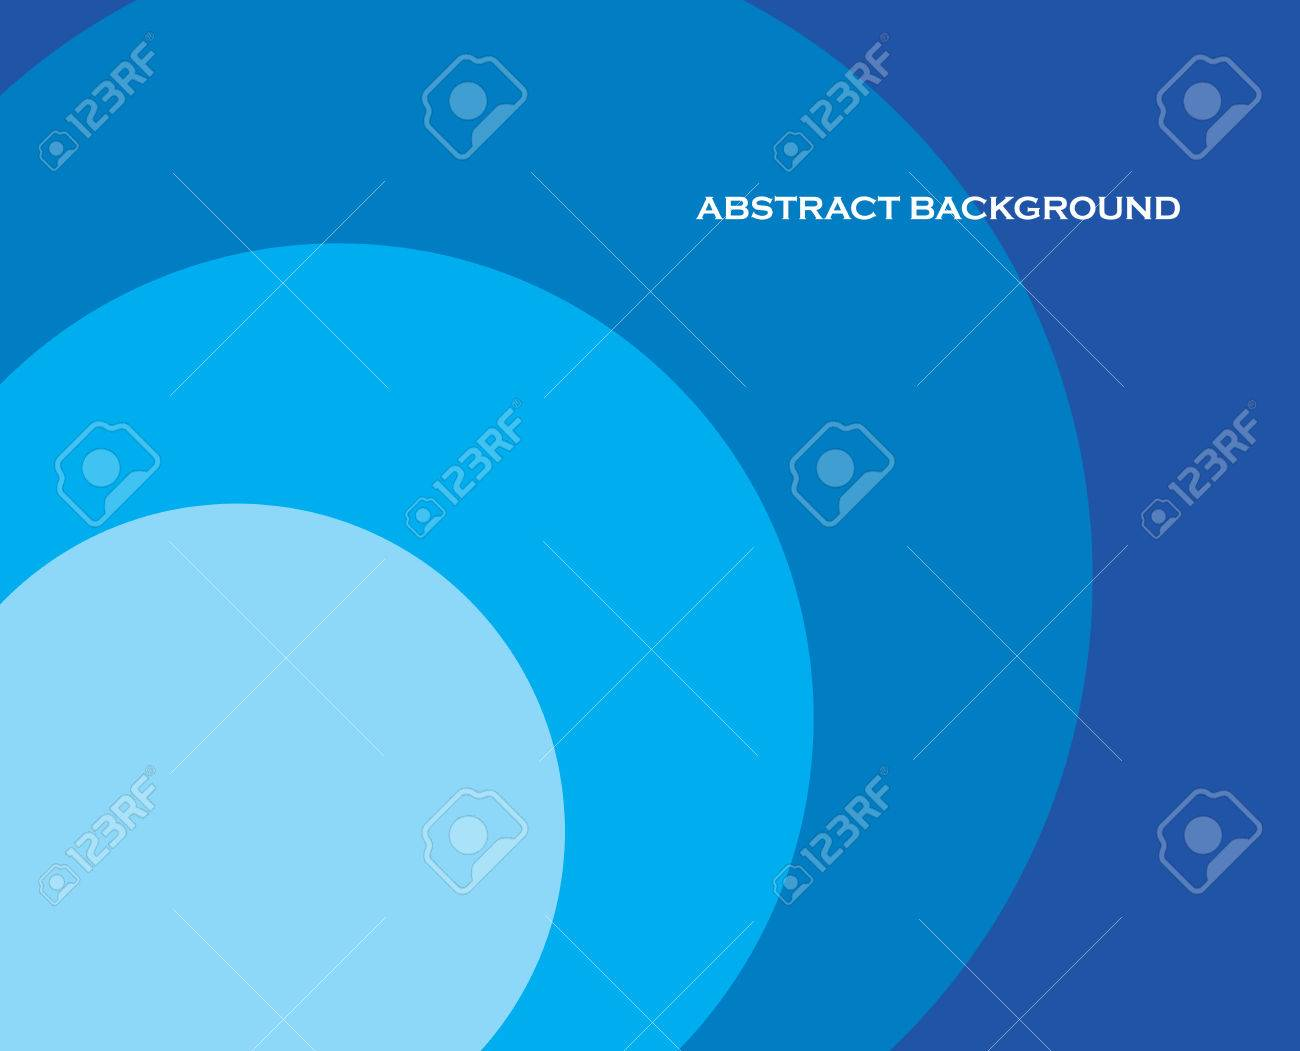 Abstract Plain Background Wallpaper Design Blank Empty Illustration Space Modern Template Vector Art Defocused Circular Round Surface